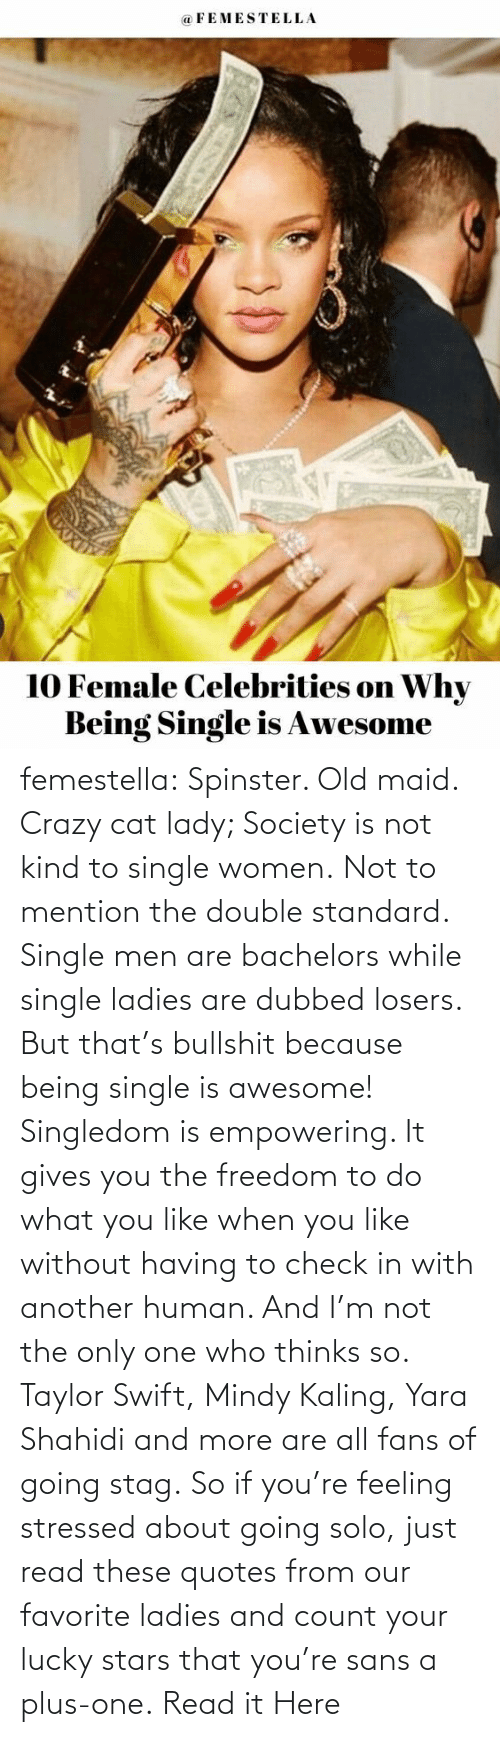 ladies: femestella: Spinster. Old maid. Crazy cat lady; Society is not kind to single women. Not to mention the double standard. Single men are bachelors while single ladies are dubbed losers. But that's bullshit because being single is awesome! Singledom is empowering. It gives you the freedom to do what you like when you like without having to check in with another human. And I'm not the only one who thinks so. Taylor Swift, Mindy Kaling, Yara Shahidi and more are all fans of going stag. So if you're feeling stressed about going solo, just read these quotes from our favorite ladies and count your lucky stars that you're sans a plus-one. Read it Here